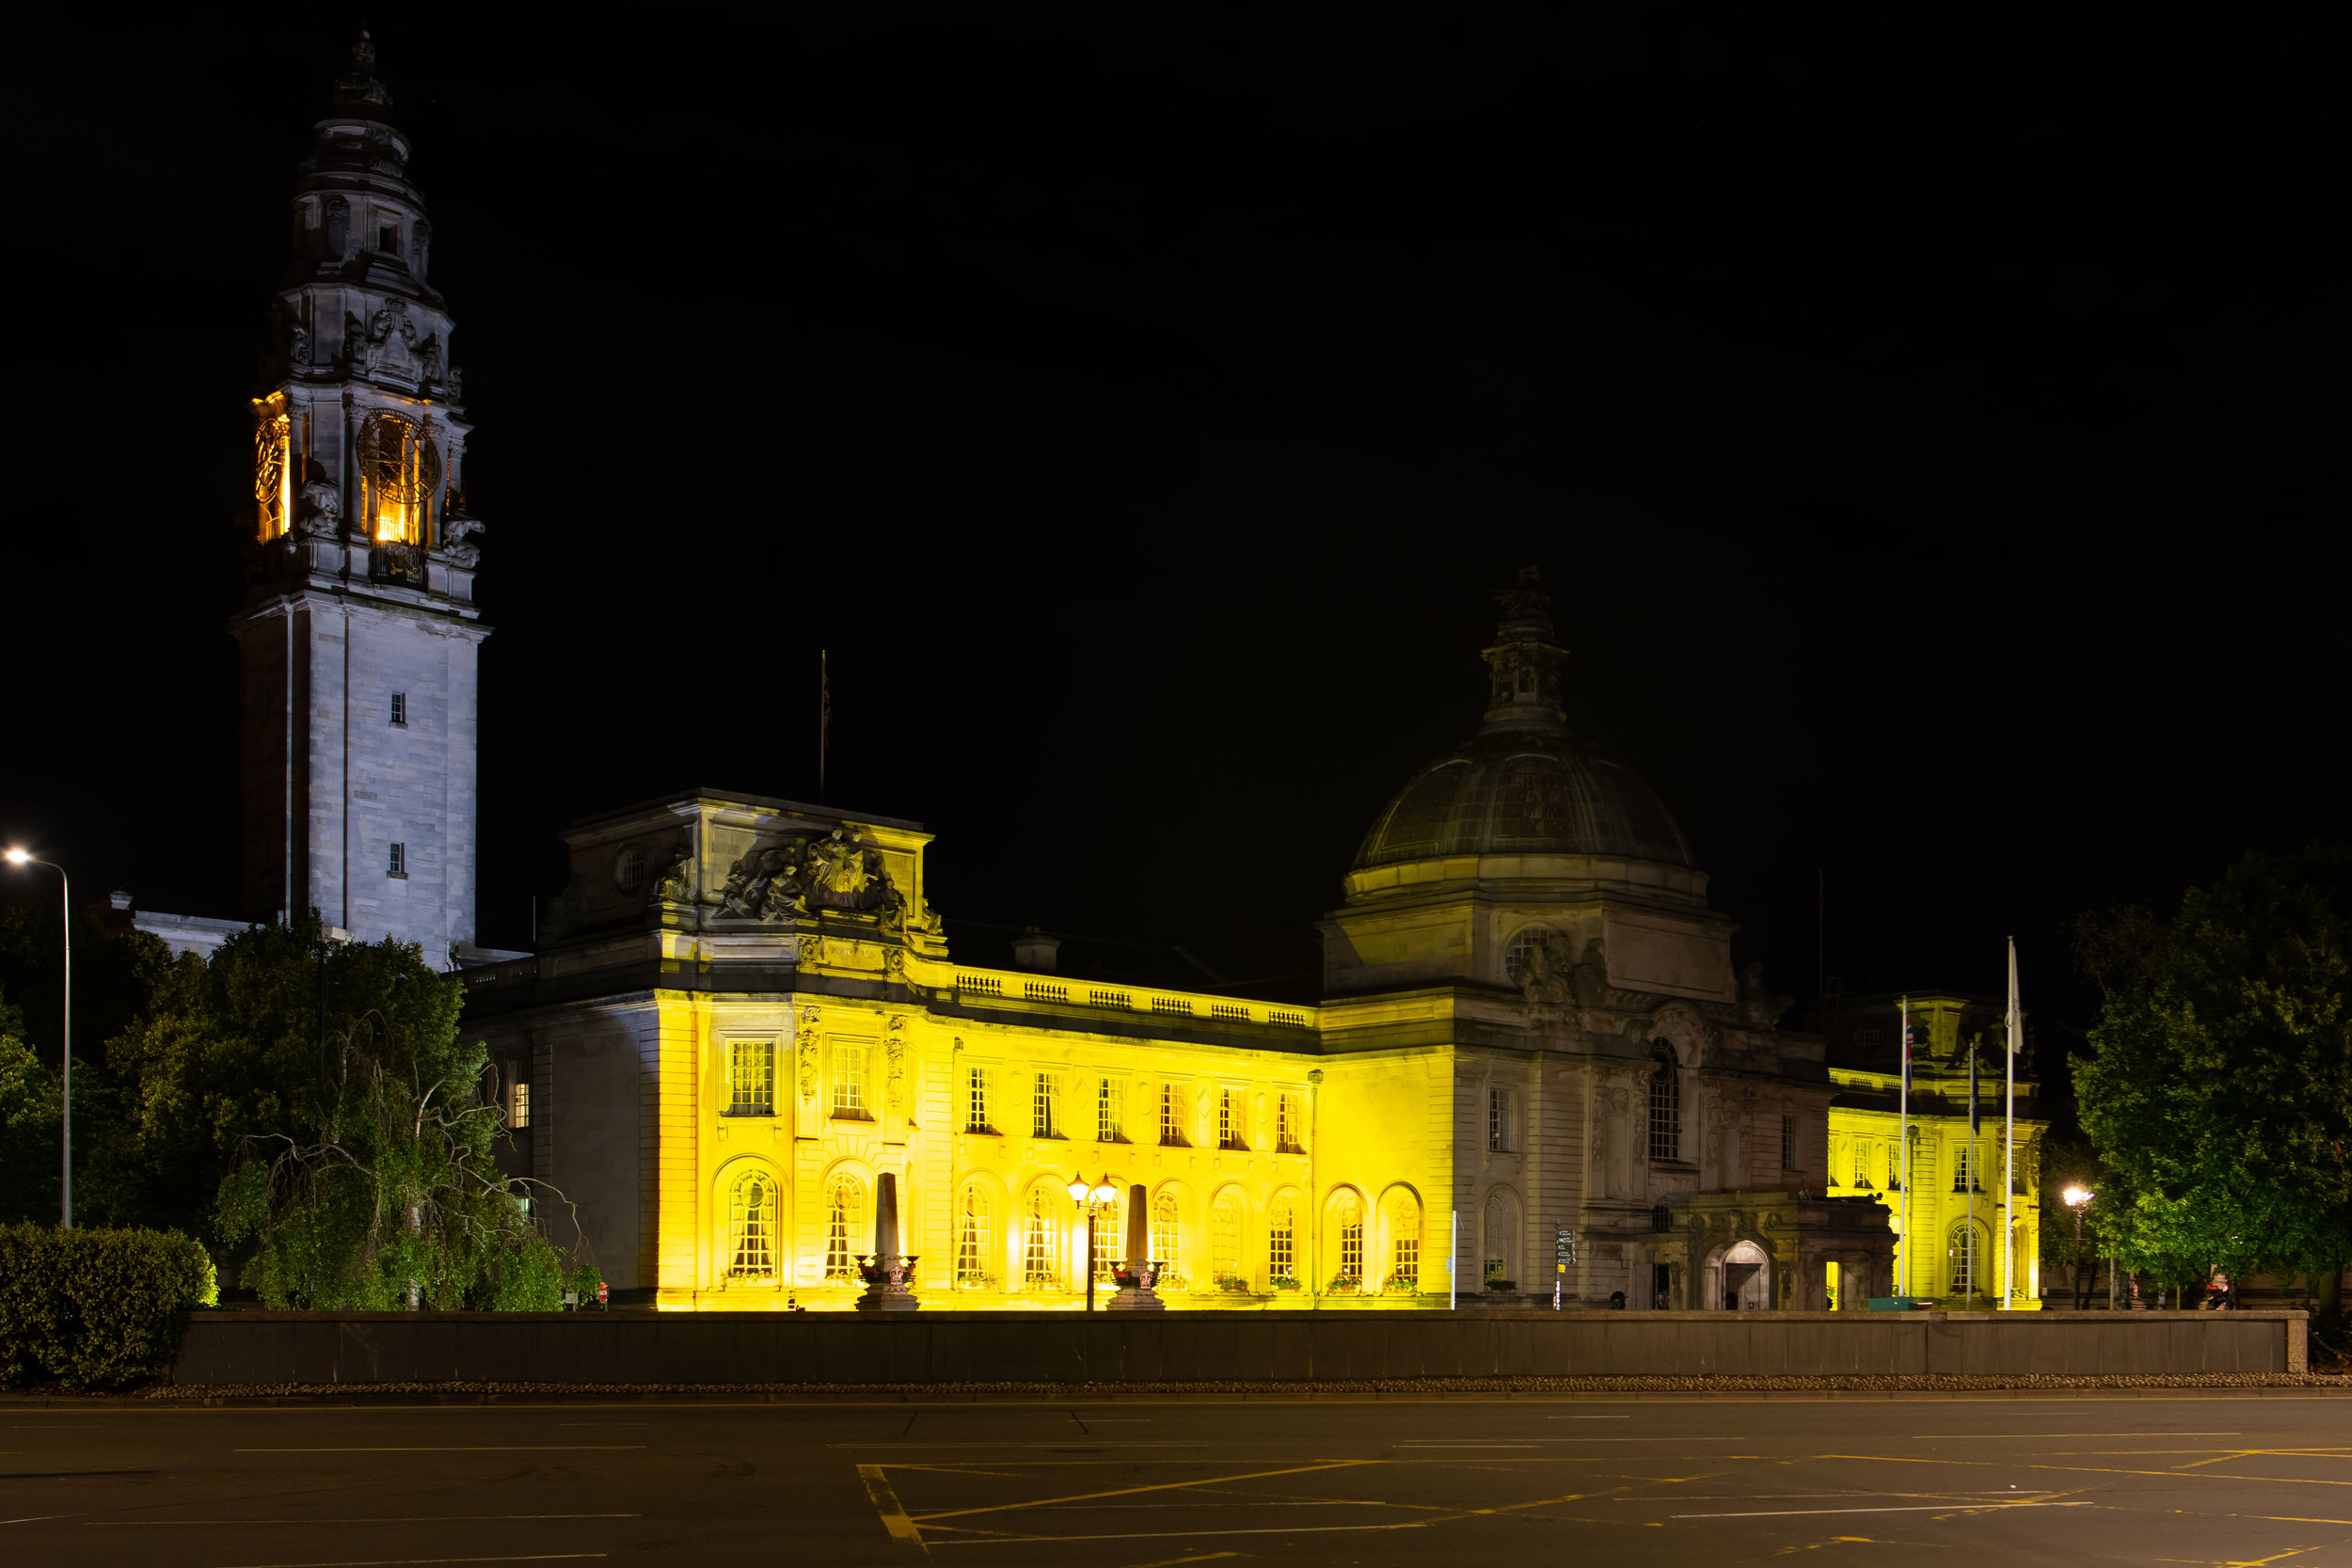 CARDIFF, WALES - JULY 29: Cardiff City Hall is seen illuminated in yellow light following cyclist Geraint Thomas' victory in the Tour De France on July 29, 2018 in Cardiff, Wales. Team Sky's Geraint Thomas, who was born in Cardiff, is the first Welshman to have won the Tour de France. The yellow illumination represents the colour of the yellow jersey worn by the race leader.